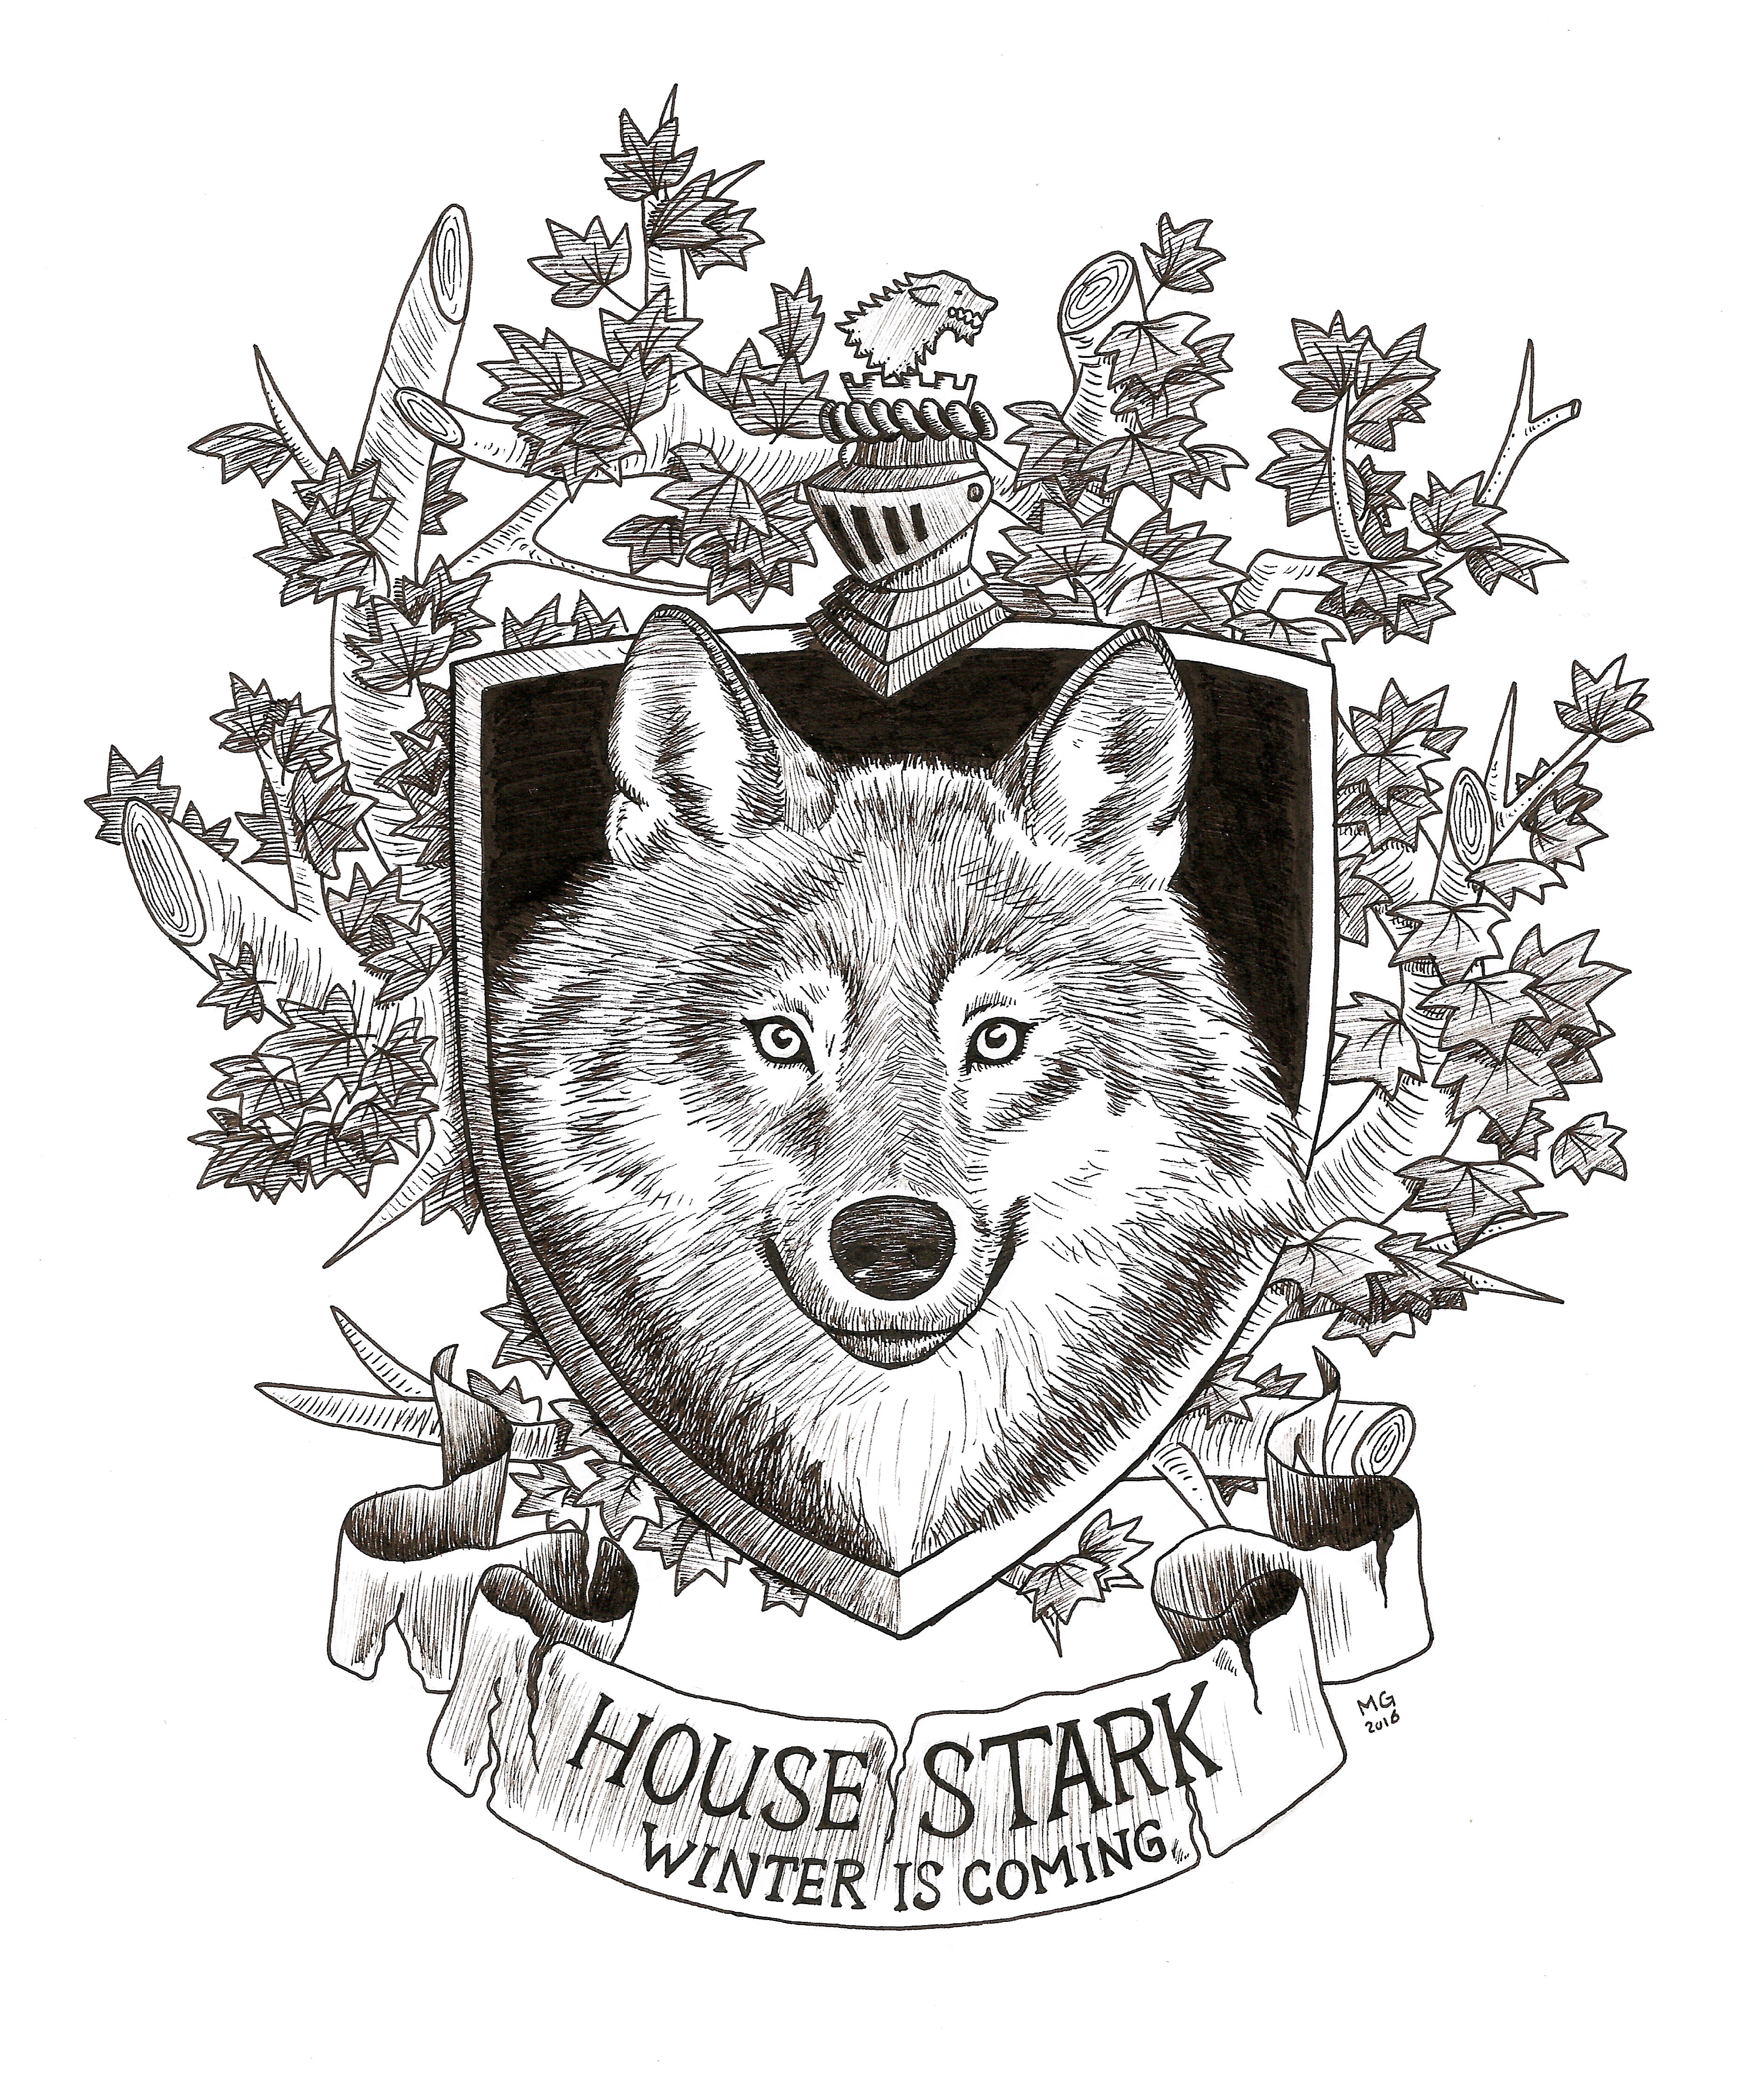 Episode one, the Stark family